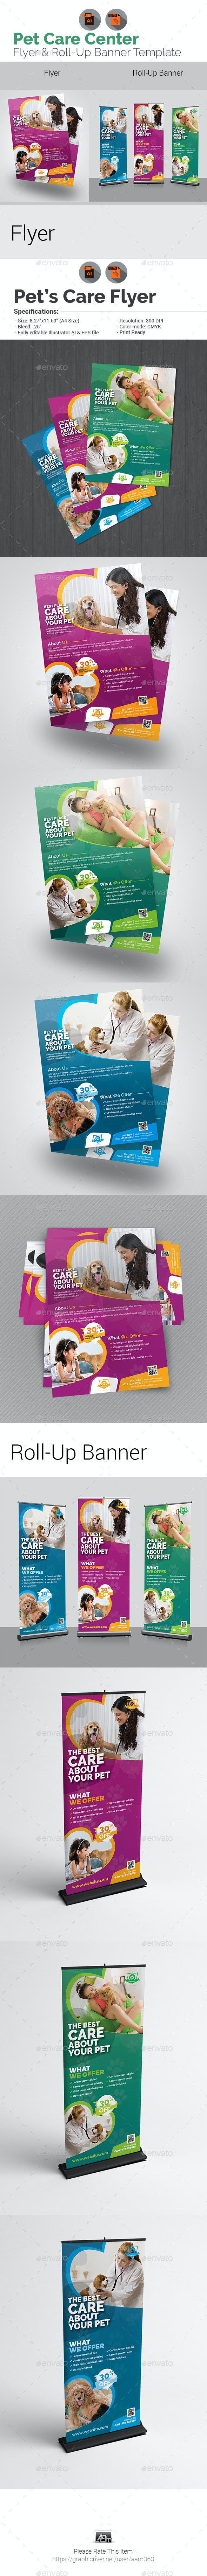 Pet Care Center Flyer with Rollup Bundle - Flyers Print Templates